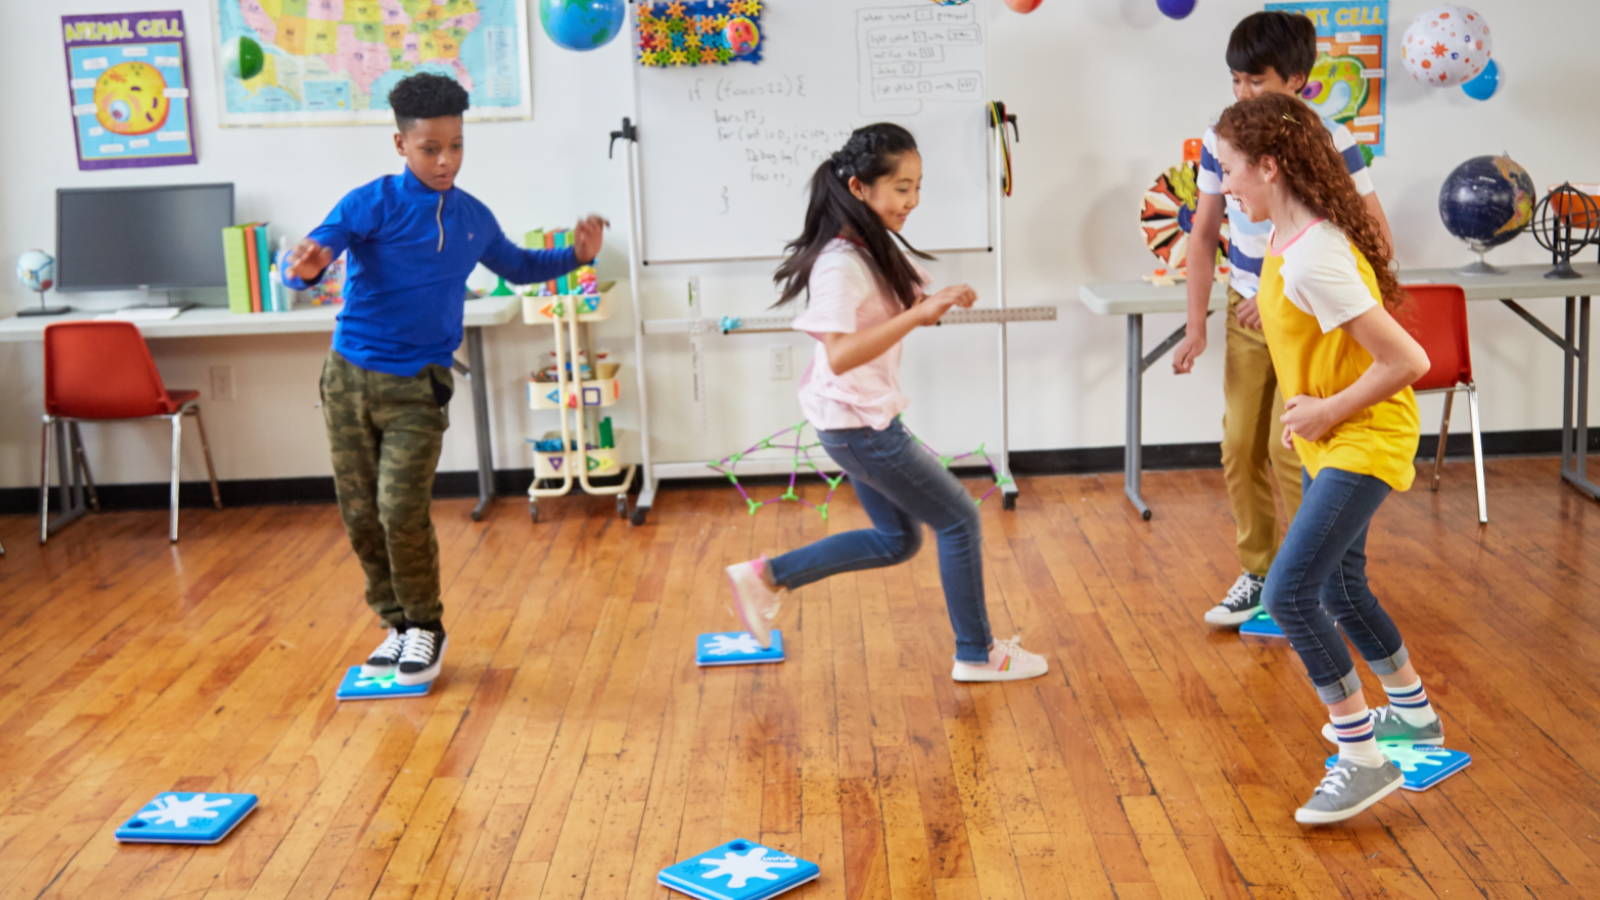 5 Easy Ways to Increase Student Engagement